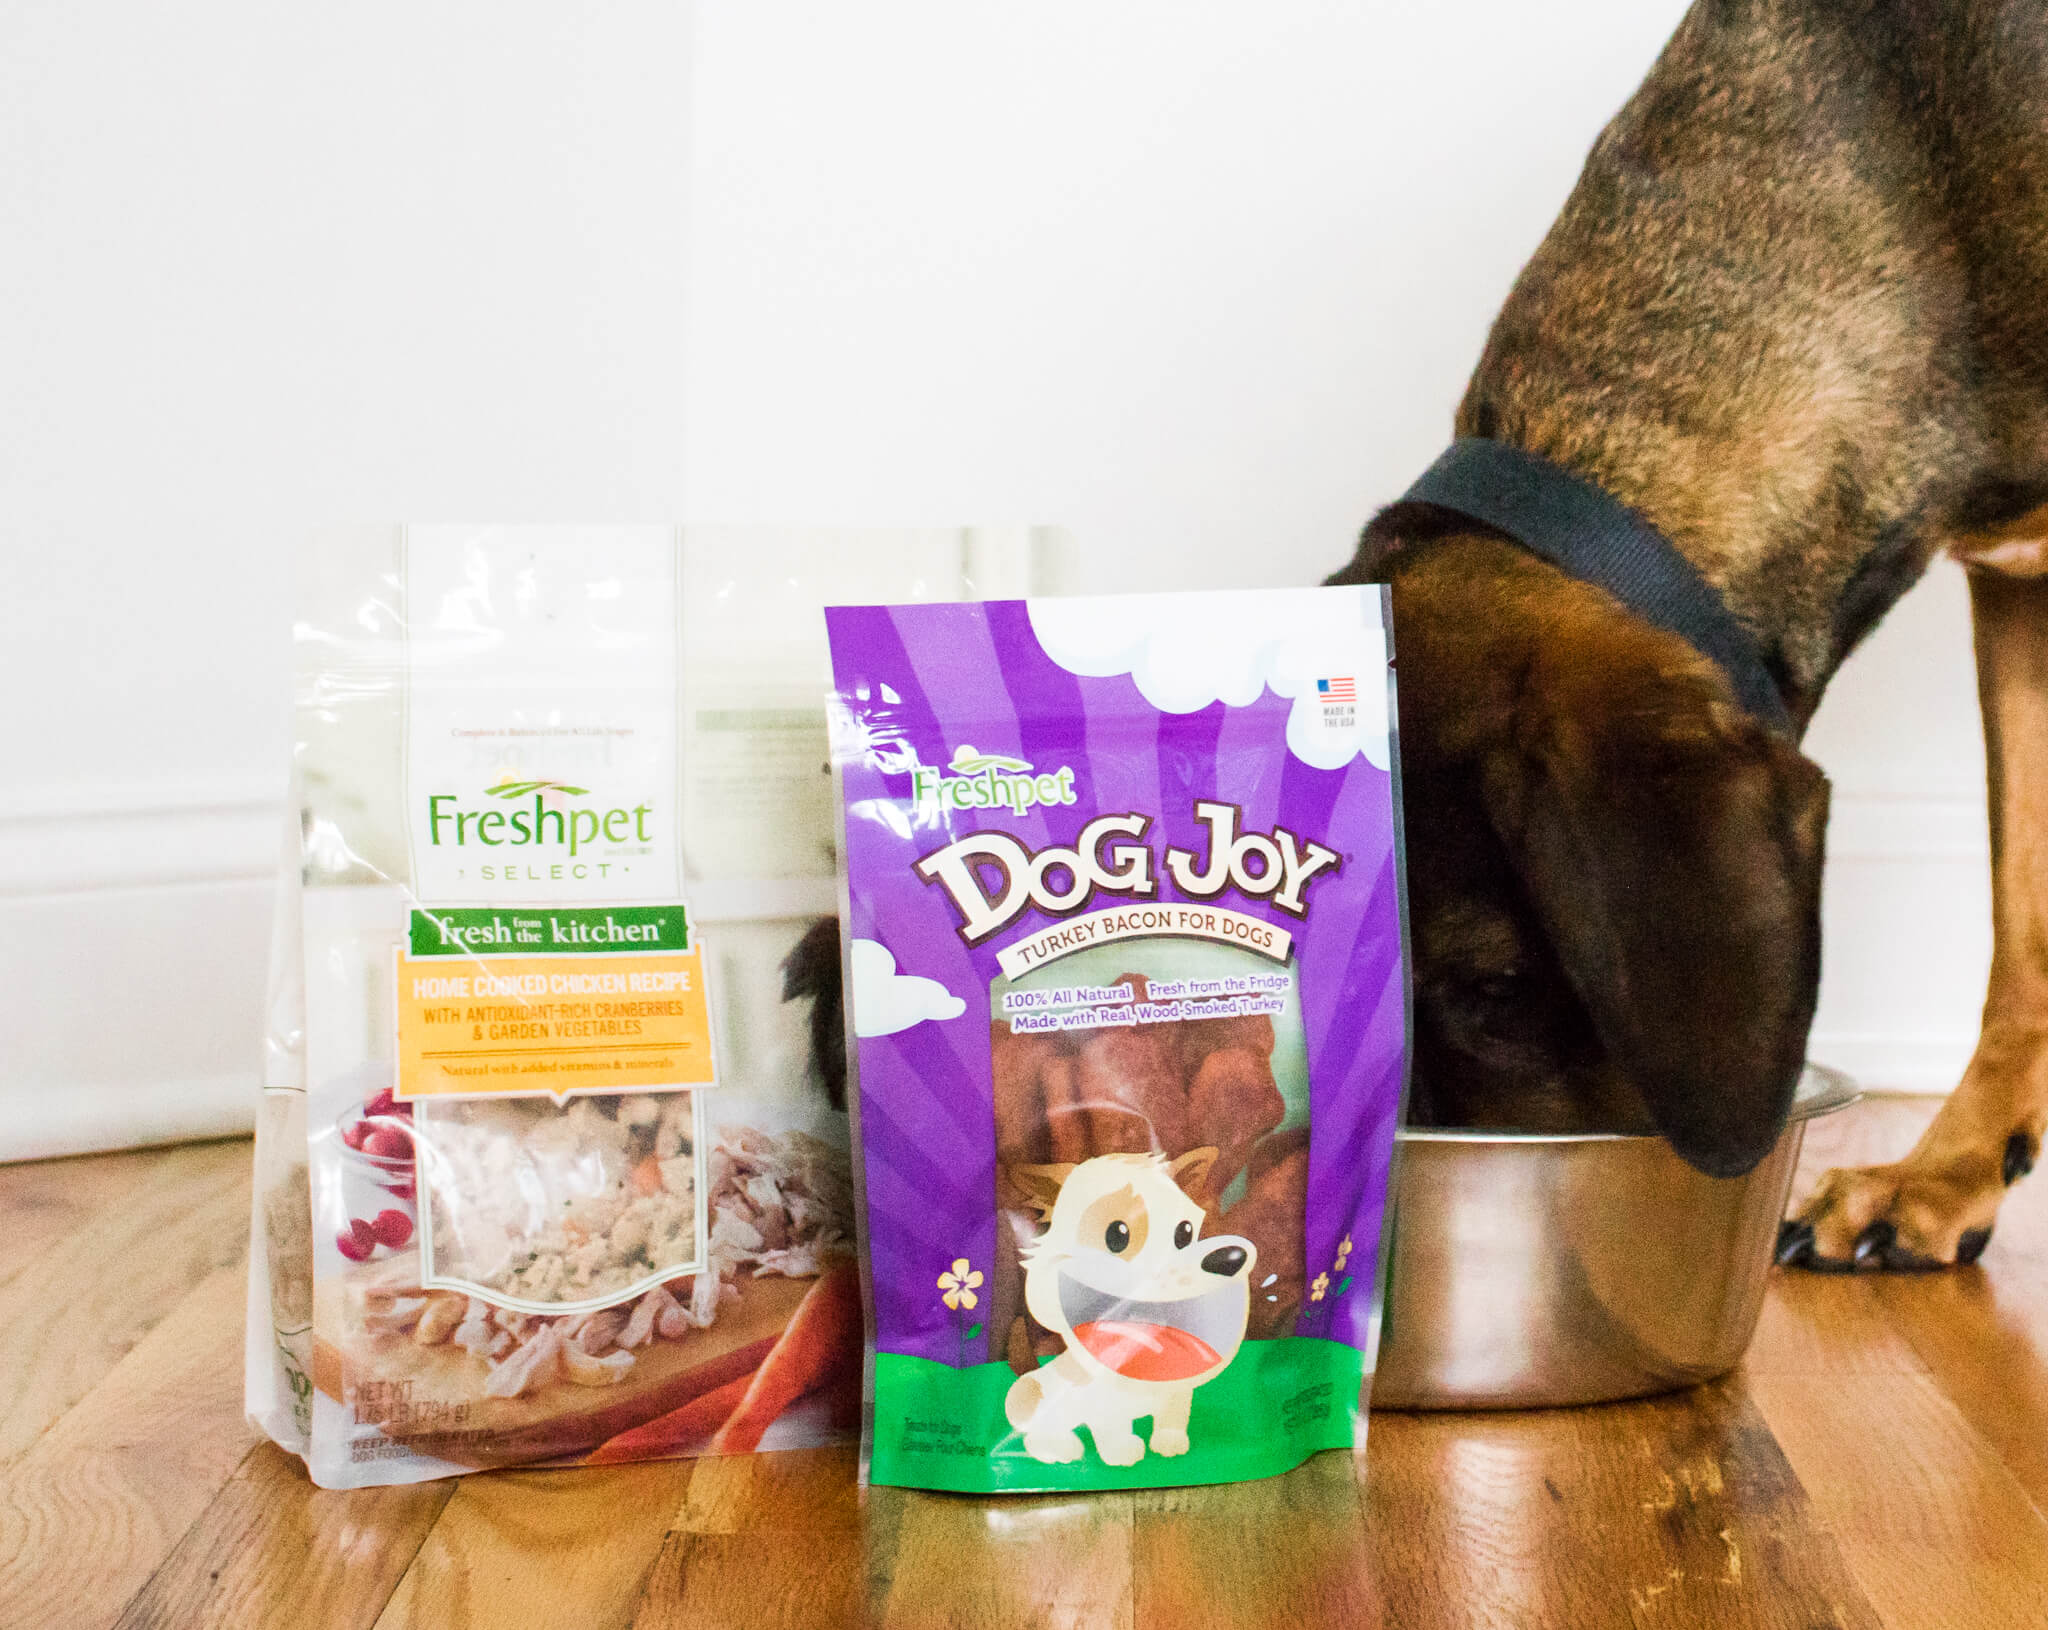 Our Experience with Freshpet and Hello Fresh!